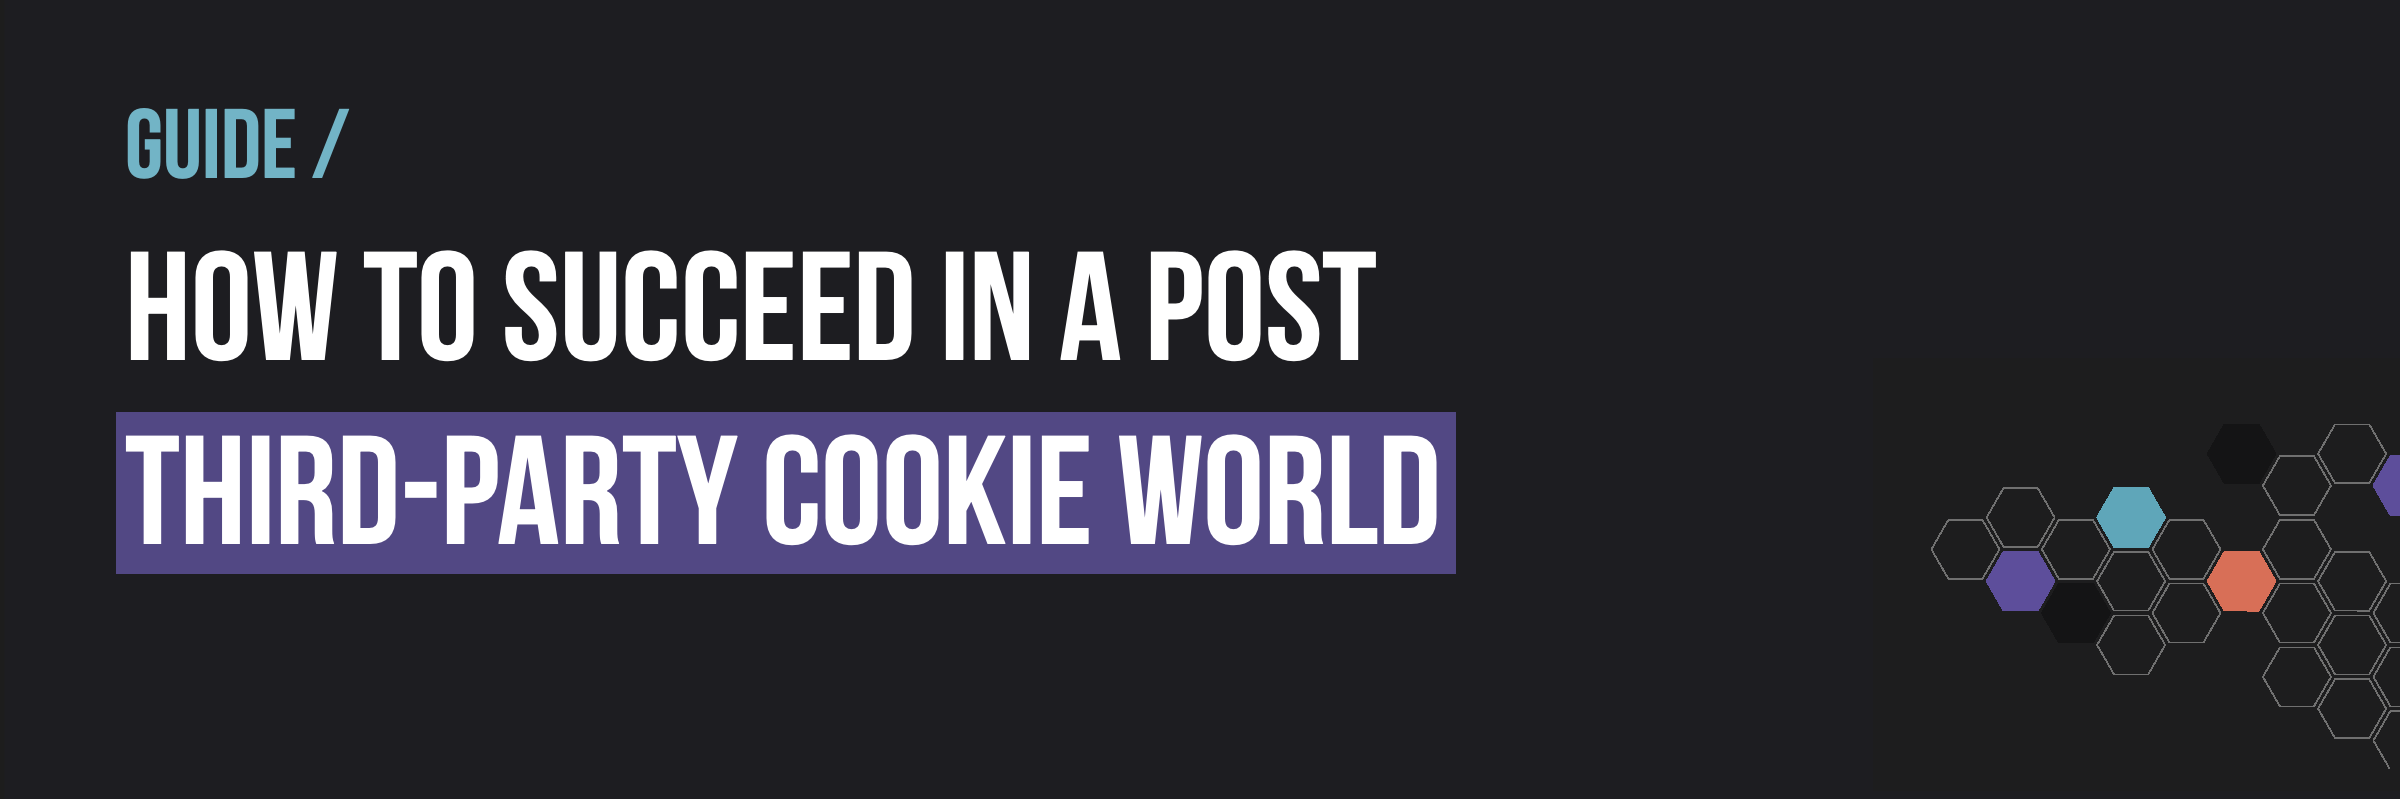 Guide - Third-Party Cookie